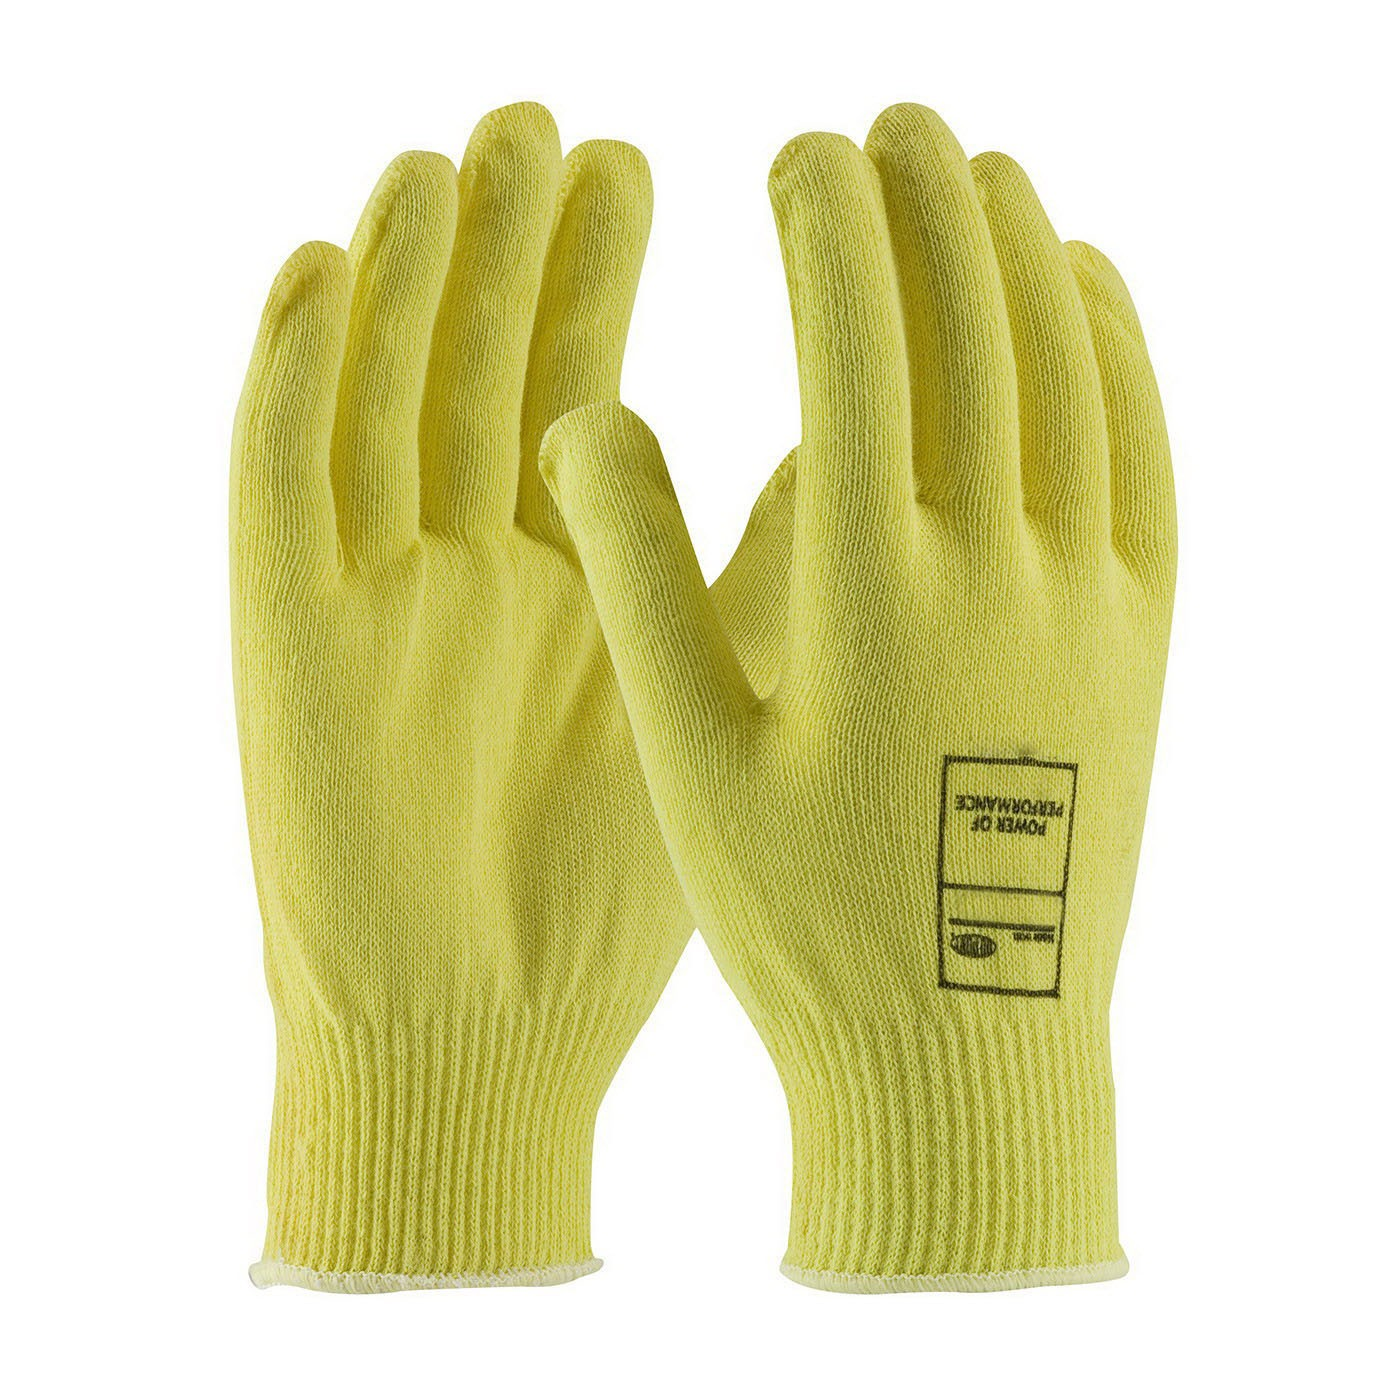 PIP® Kut-Gard® 07-K200 Light Weight Cut-Resistant Gloves